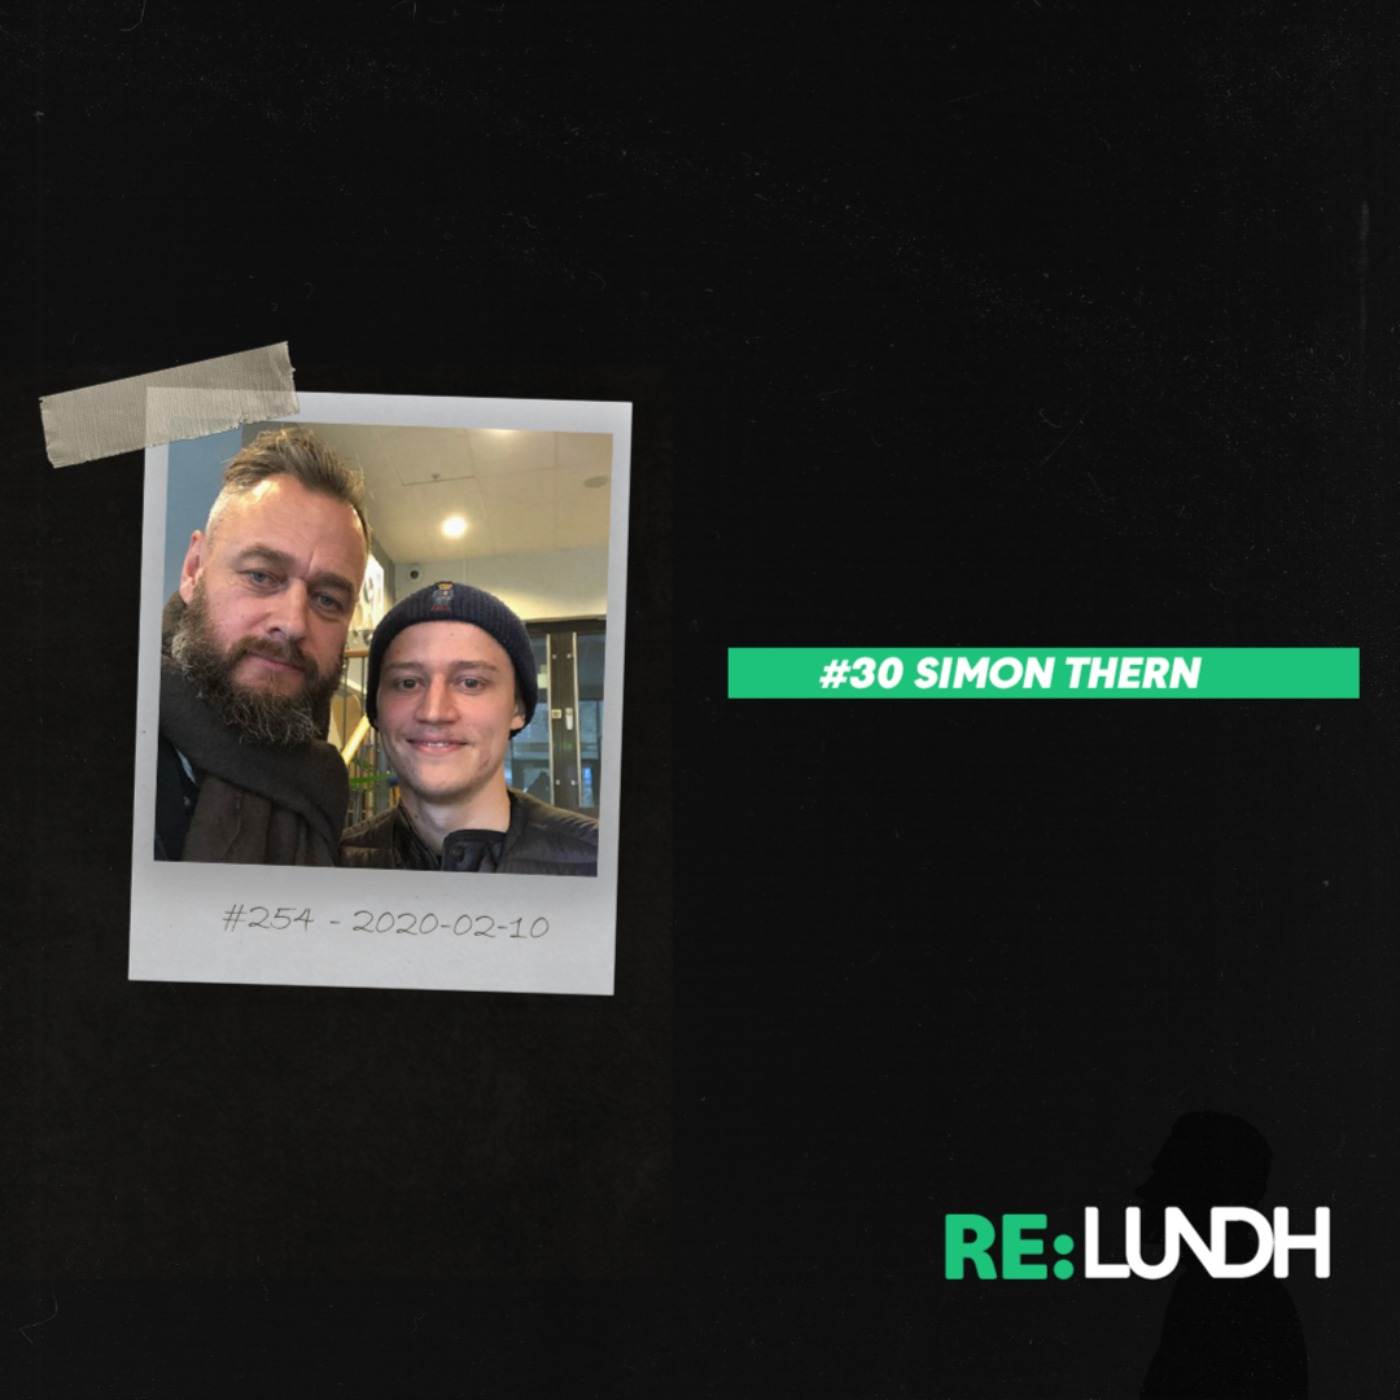 30 Re:Lundh - Simon Thern